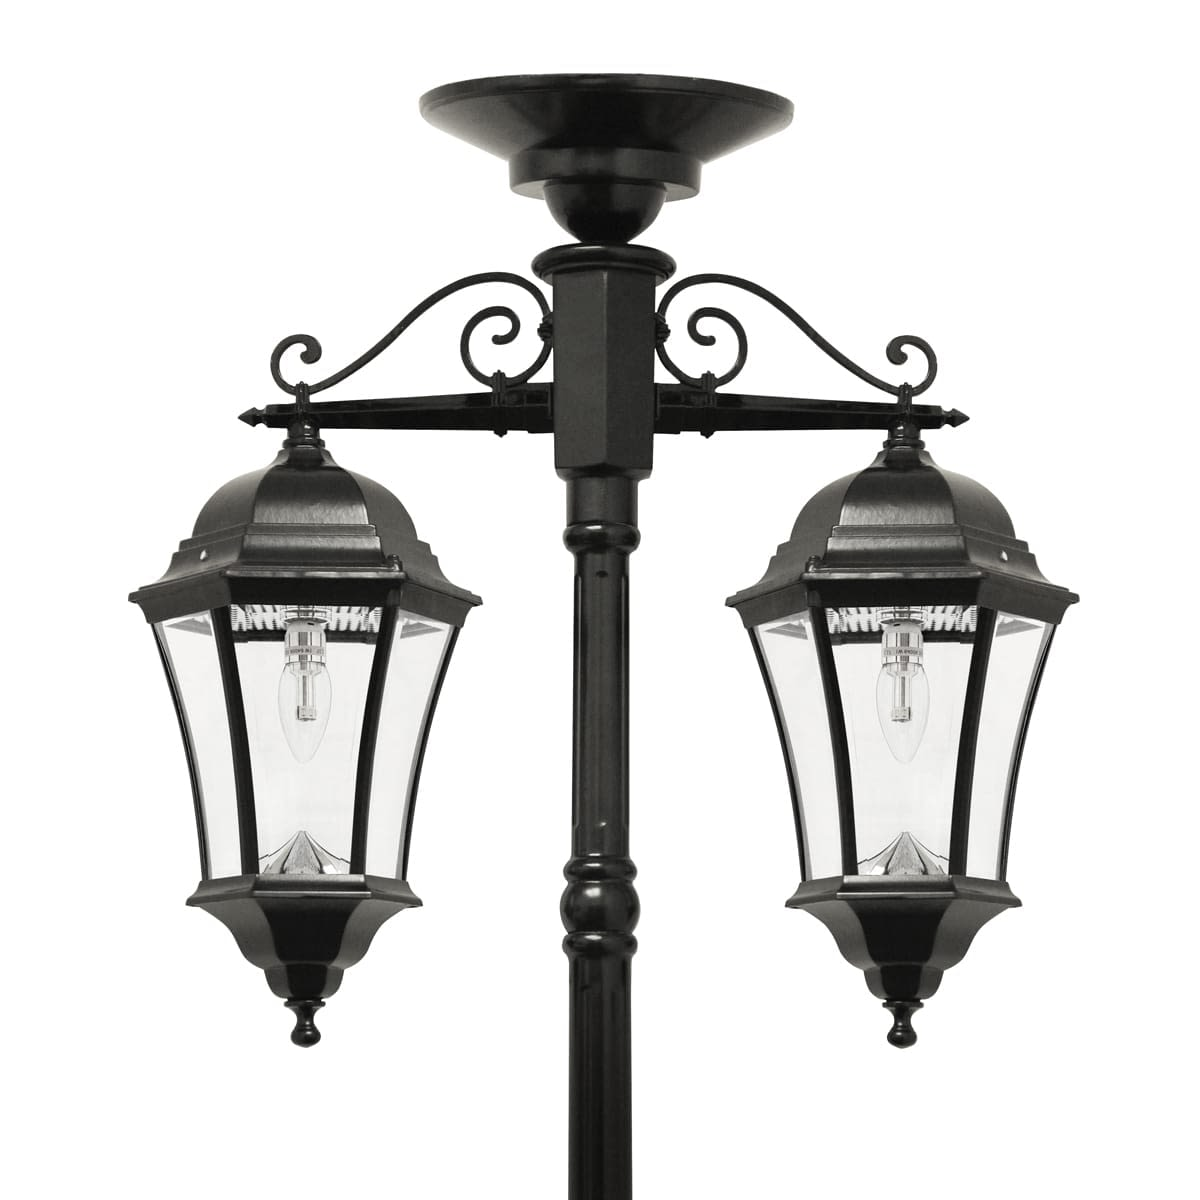 Double Downward Hanging Solar Lamp Post